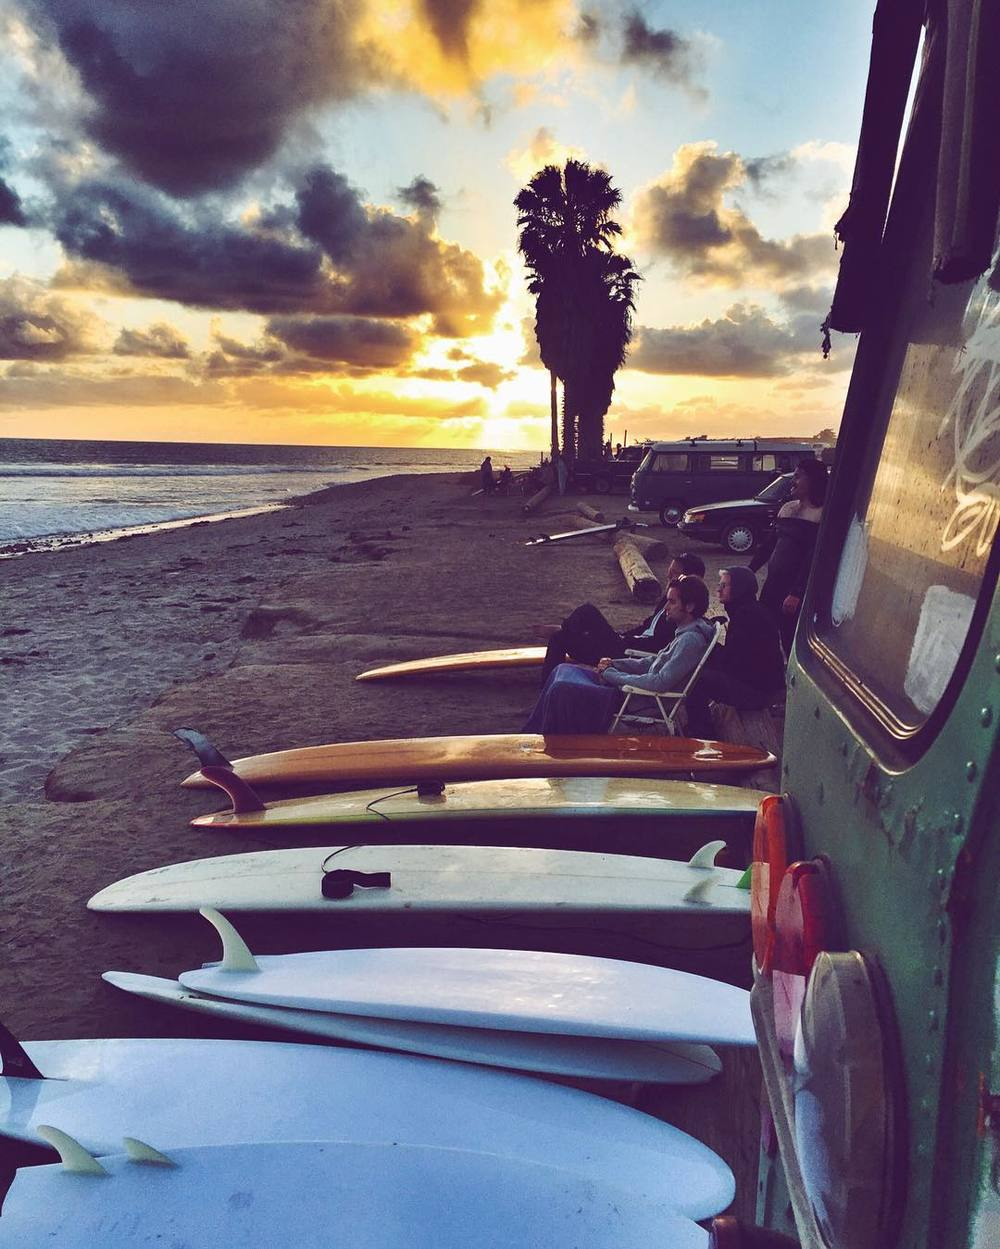 I_m_listening_to_a_guy_singing_Don_t_touch_my_bikini..._____beach__sunset__surfing__sanonofre__onthebus__offthebus_by_jxxsy.jpg